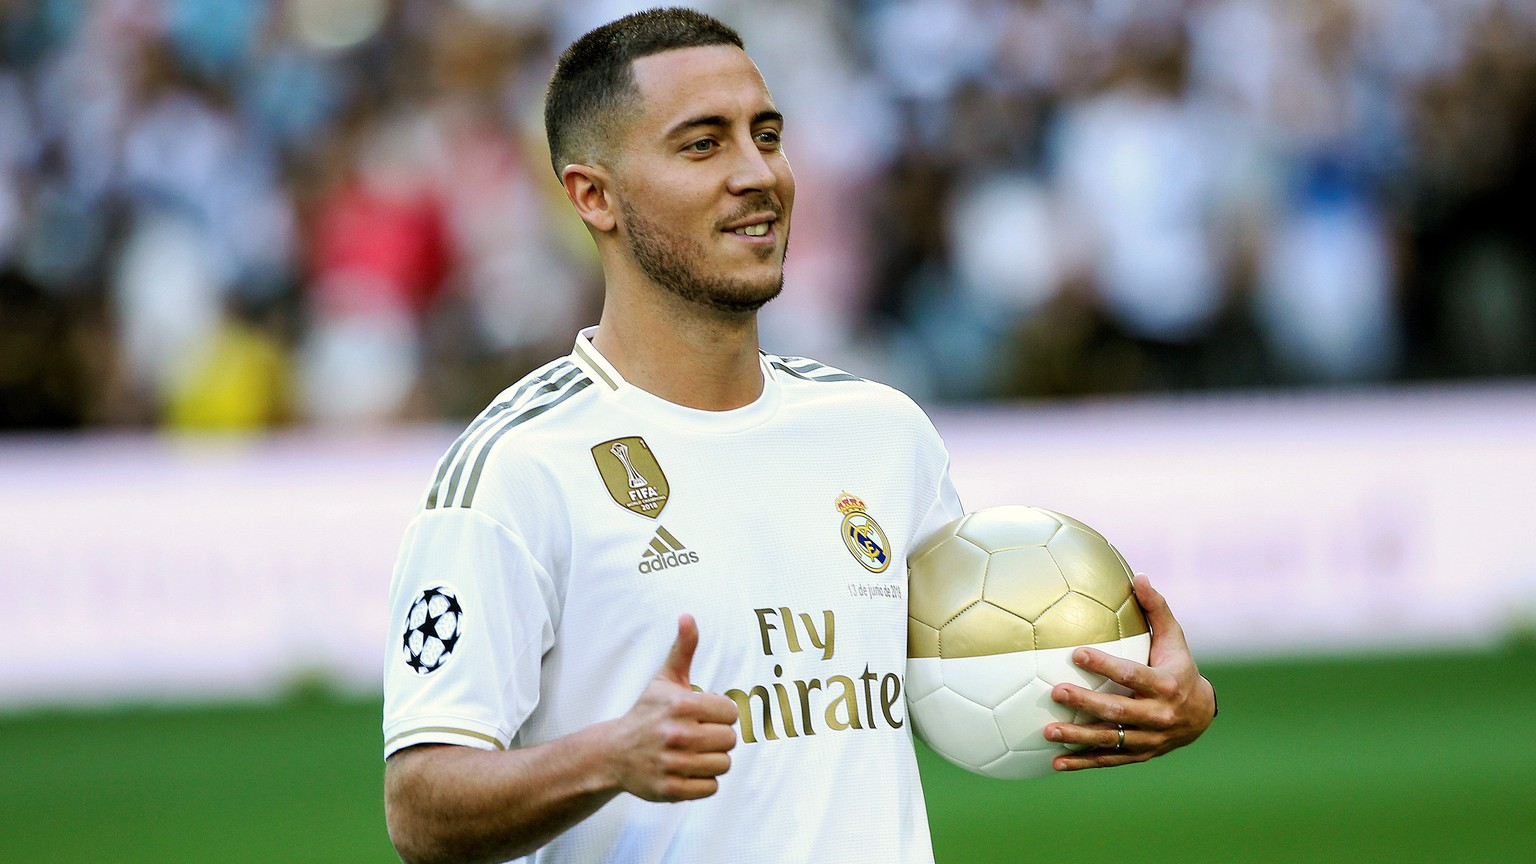 epa07646259 Real Madrid's new soccer player Eden Hazard poses for the photographers during his presentation at Santiago Bernabeu stadium in Madrid, Spain, 12 June 2019. Belgian Eden Hazard has signed a five-seasons-contract with Real Madrid after Spanish LaLiga's club Real Madrid reached an agreement with Chelsea FC for his transfer for 100 million euro plus 30 on variables.  EPA/Rodrigo Jimenez